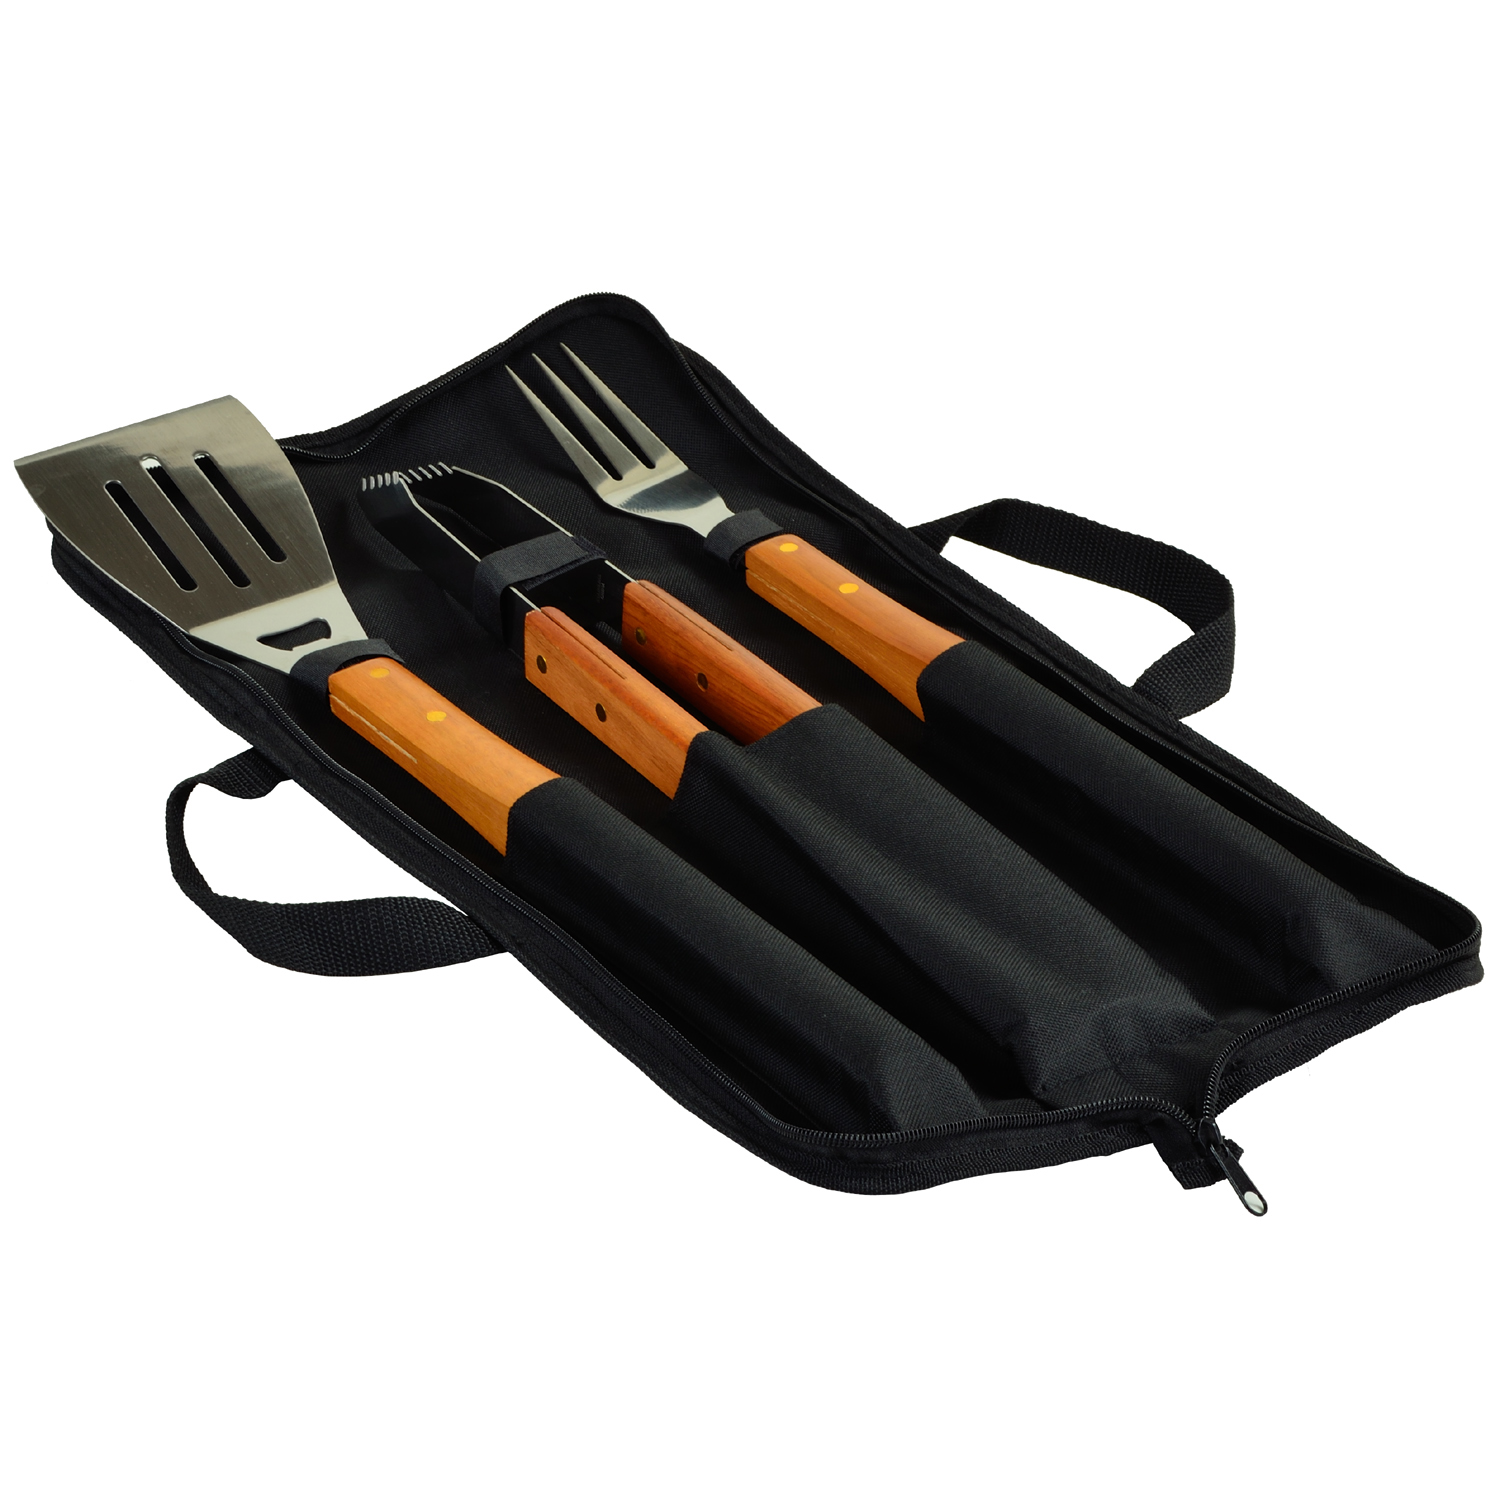 Picnic At Ascot 3 Piece Wood Handle Barbecue Set